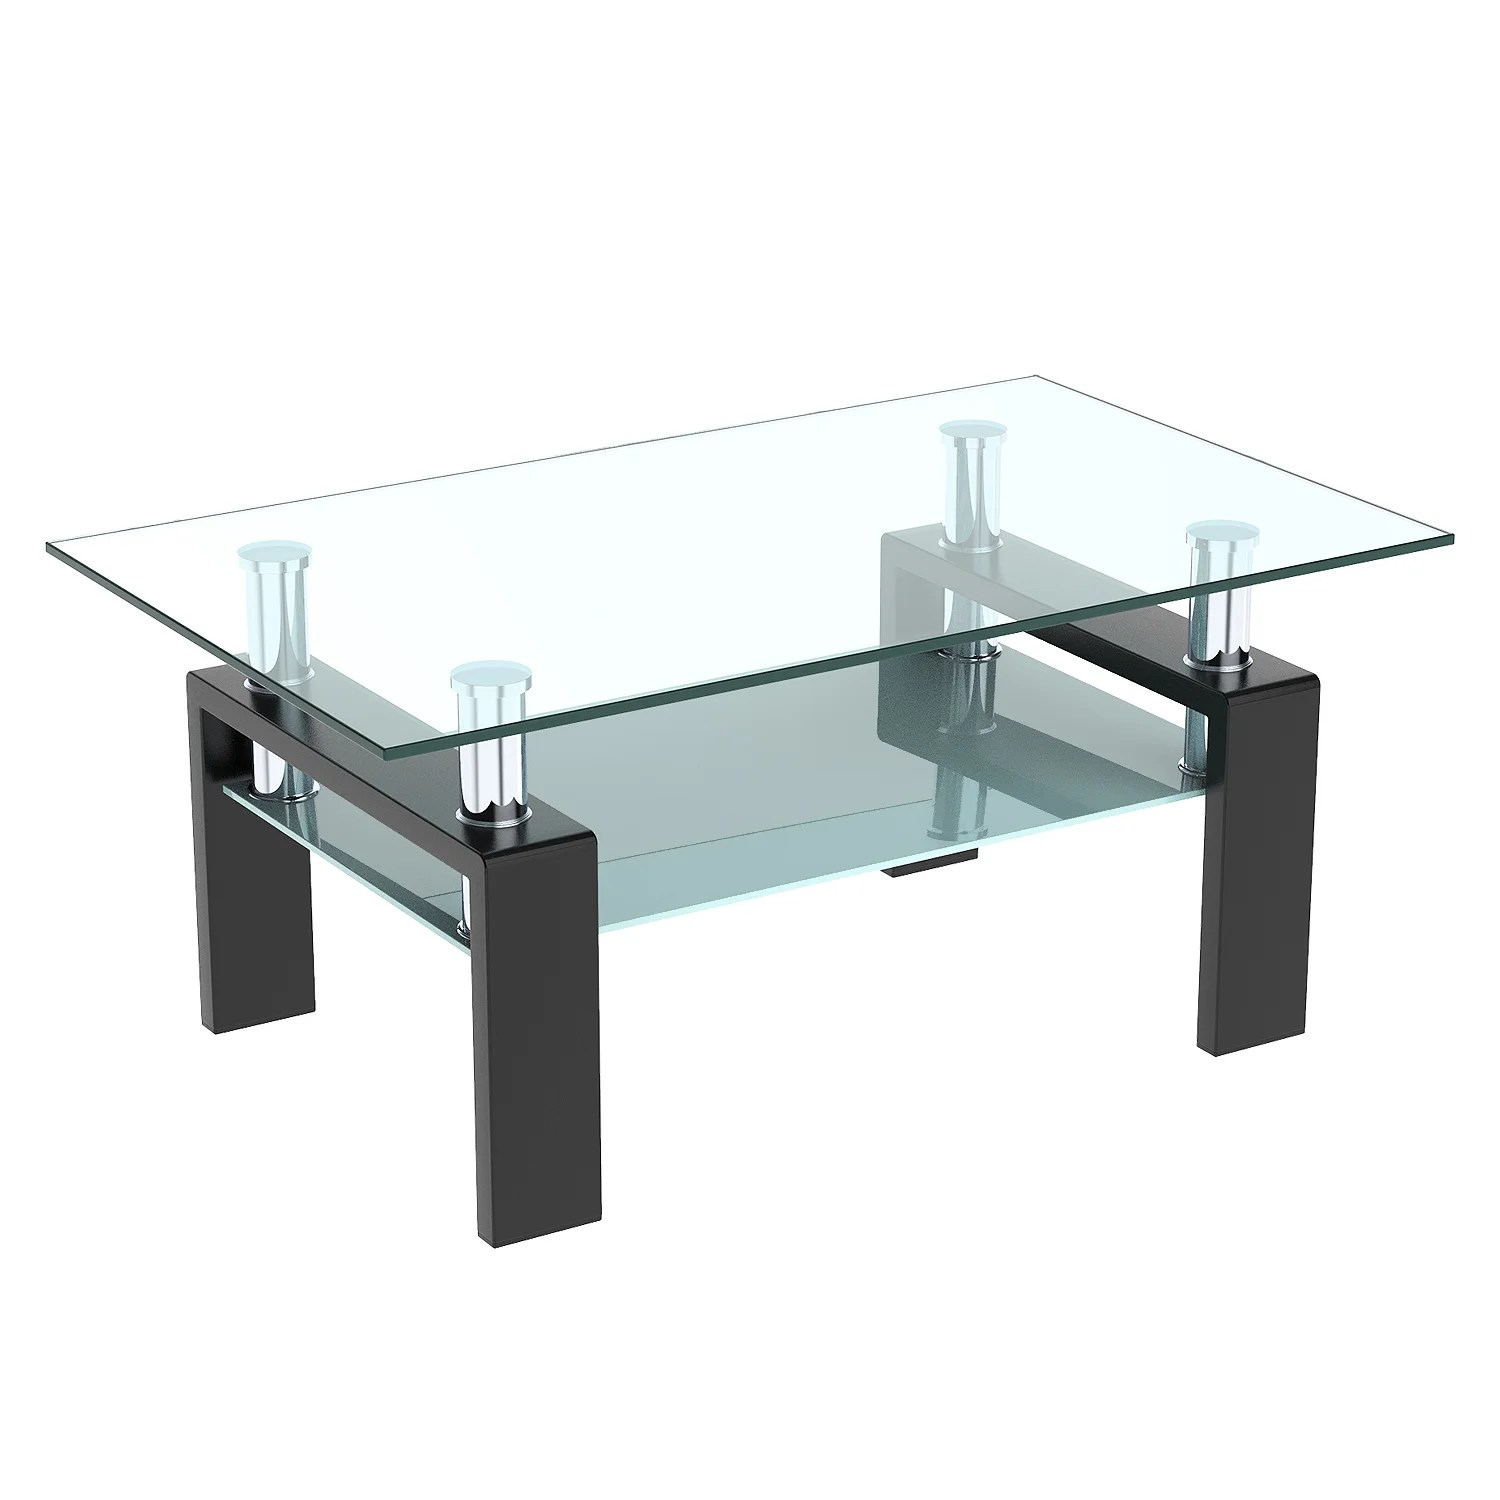 coffee table rectangle glass modern coffee table with shelf wood legs suit for living room living room furniture waiting area table black